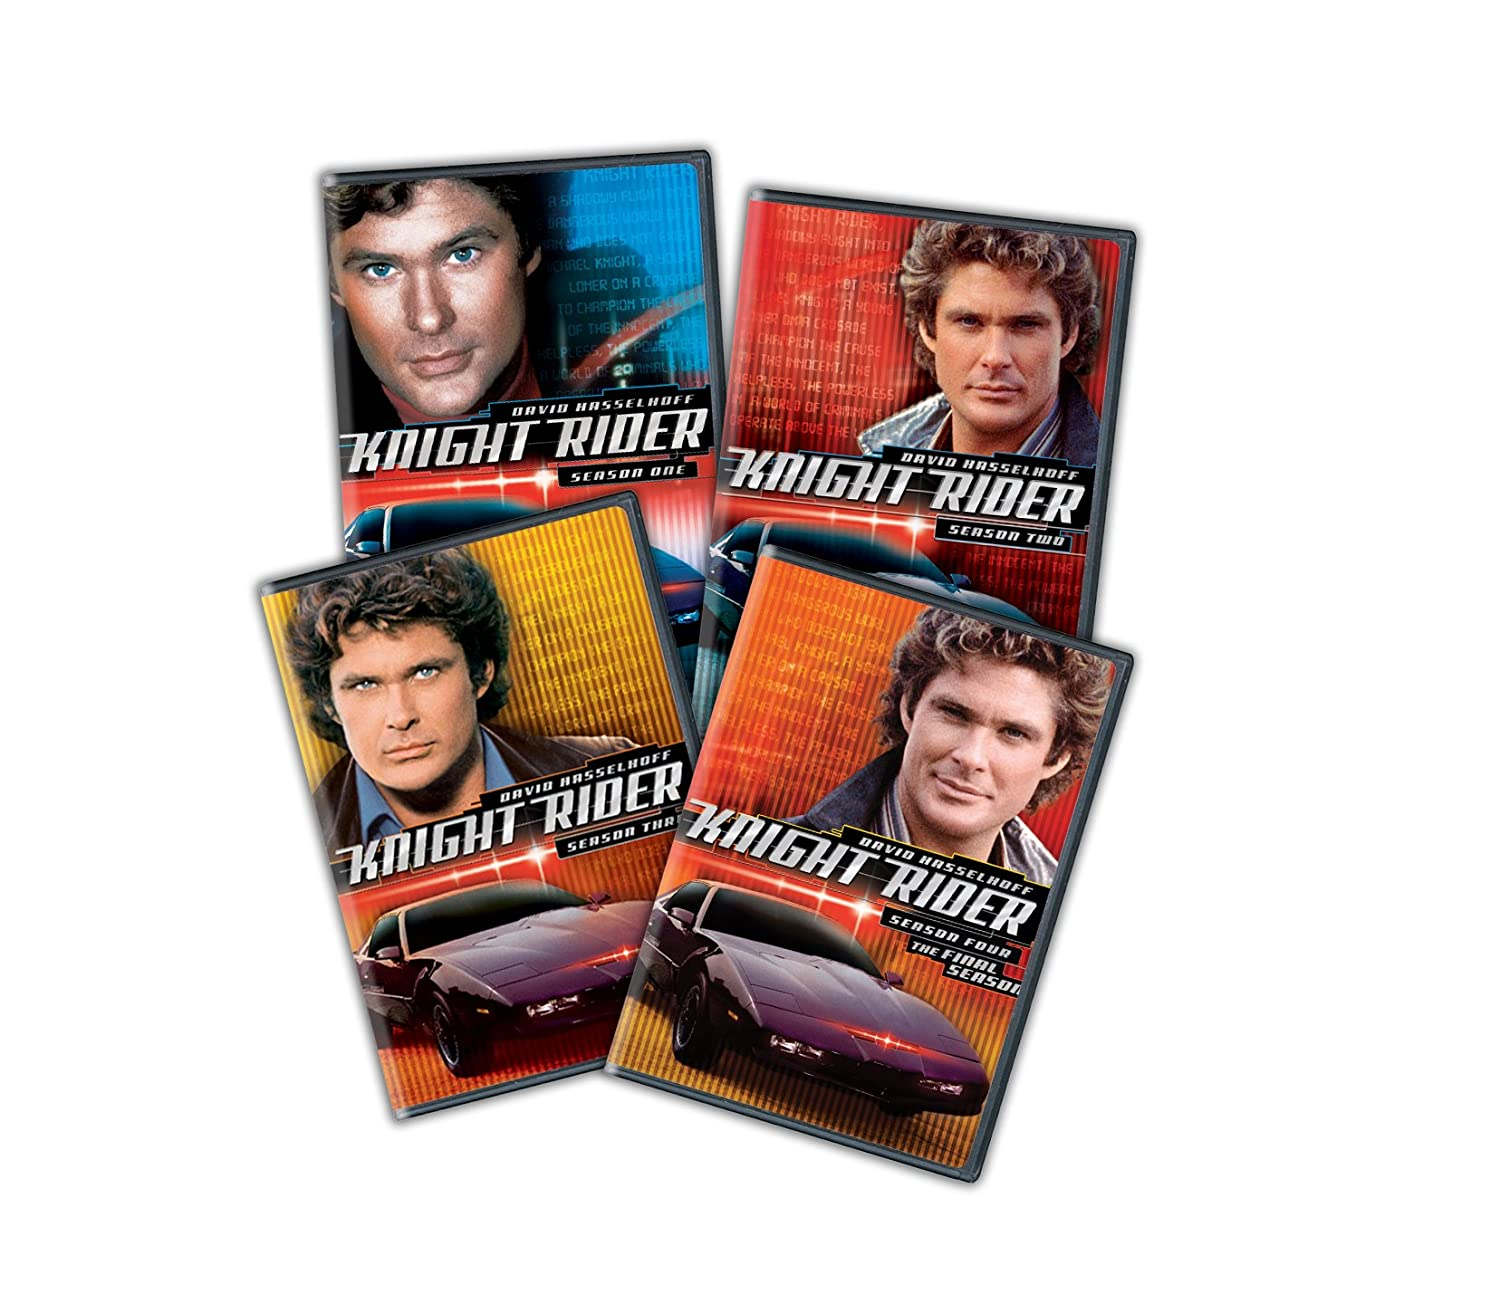 Knight Rider:  The Complete Series 	$52.49